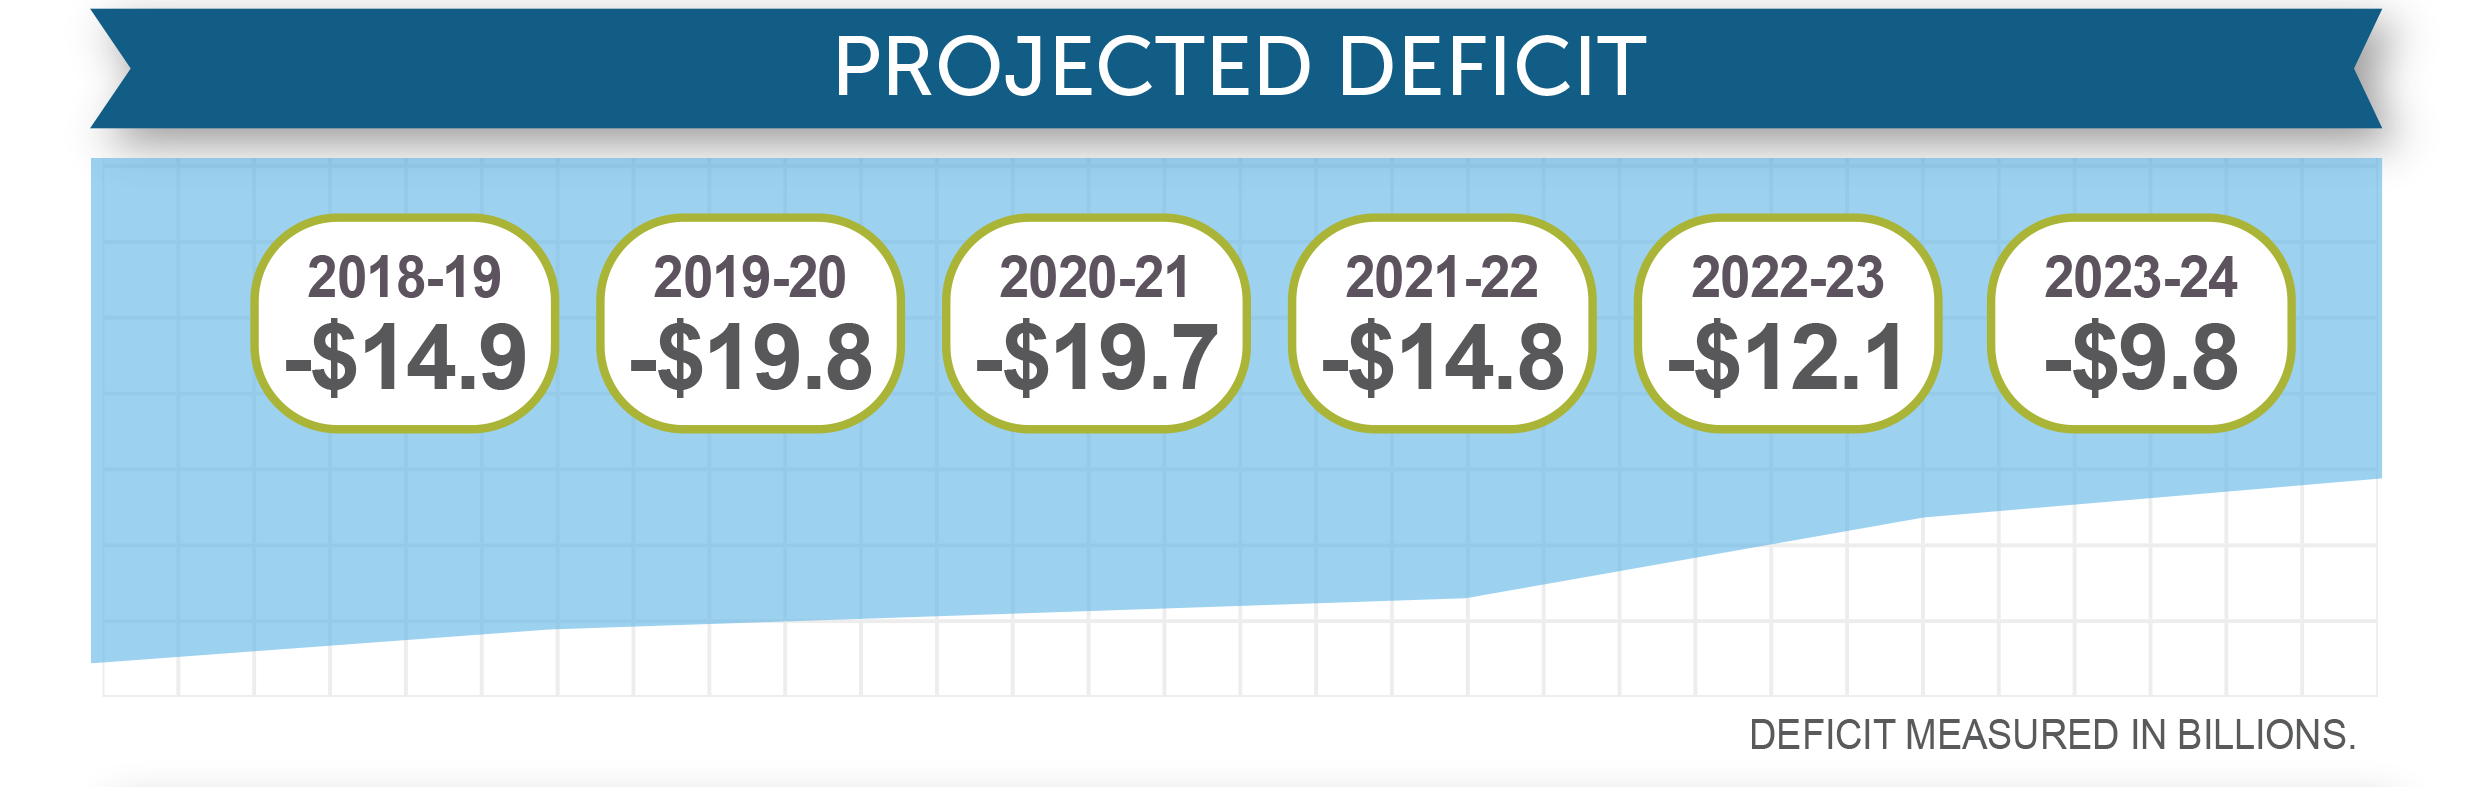 Projected deficit